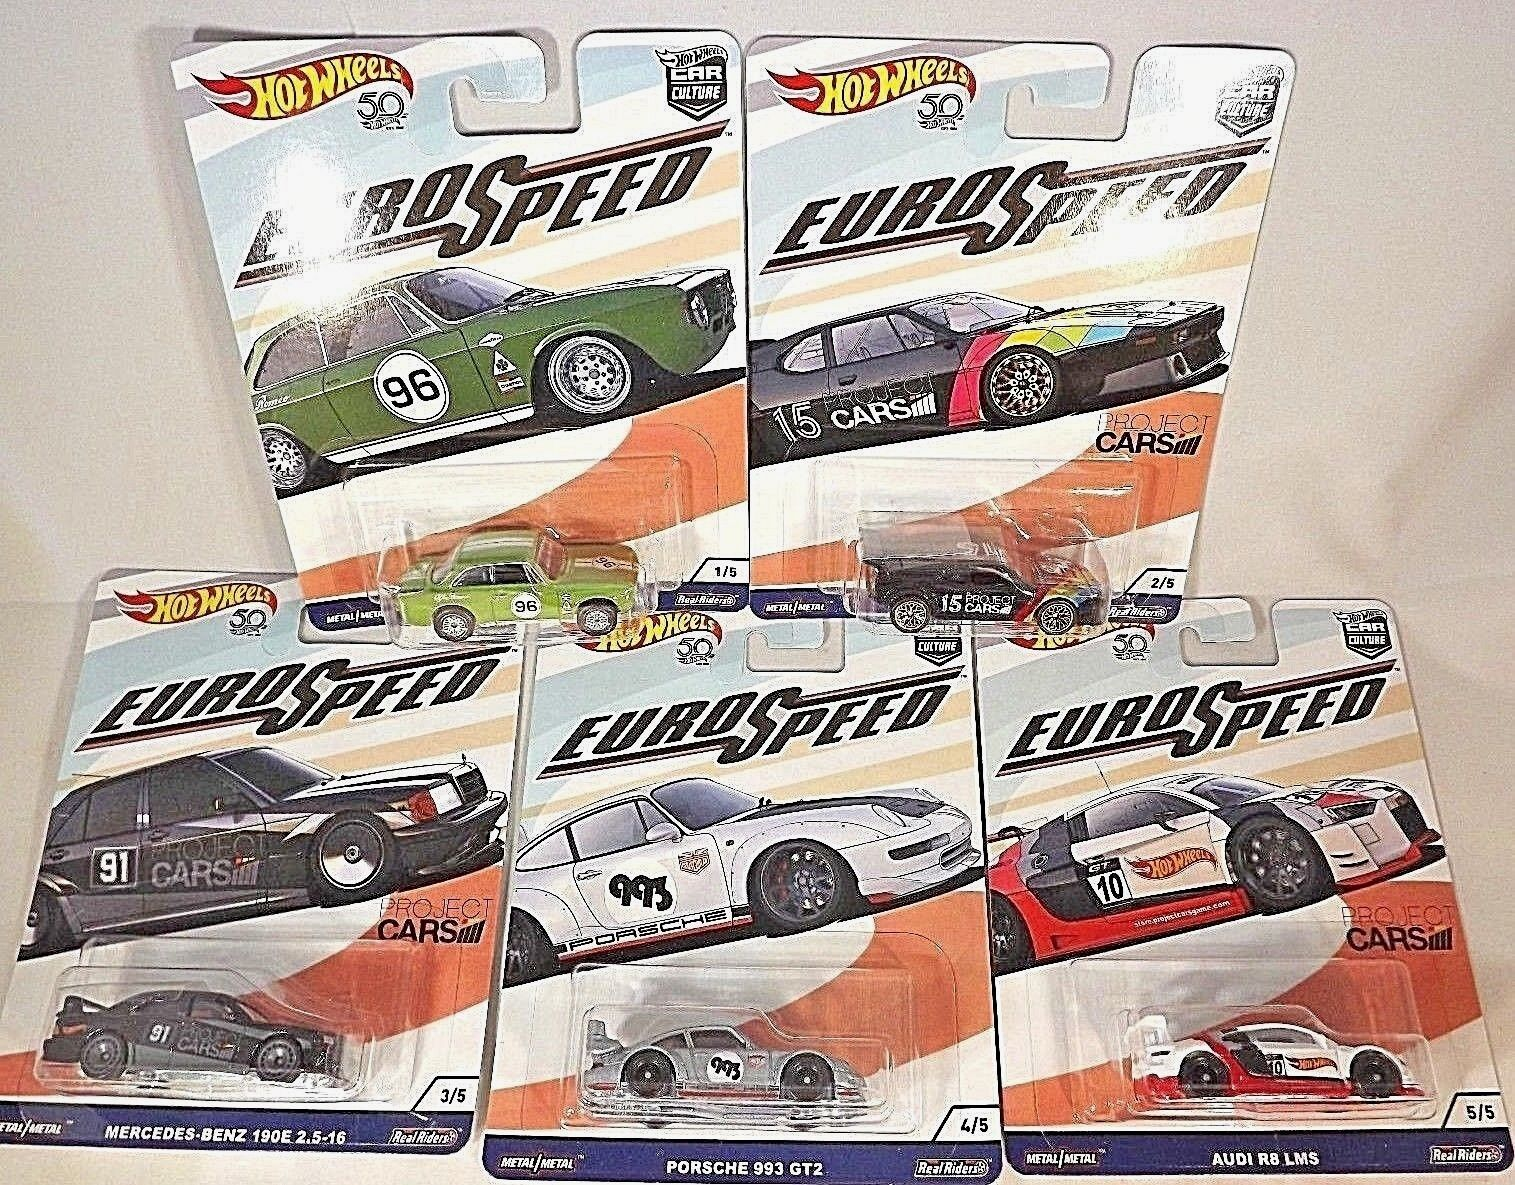 2018 Hot Wheels Car Culture EURO SPEED Complete Set Of 5 w RR Wheels See Details